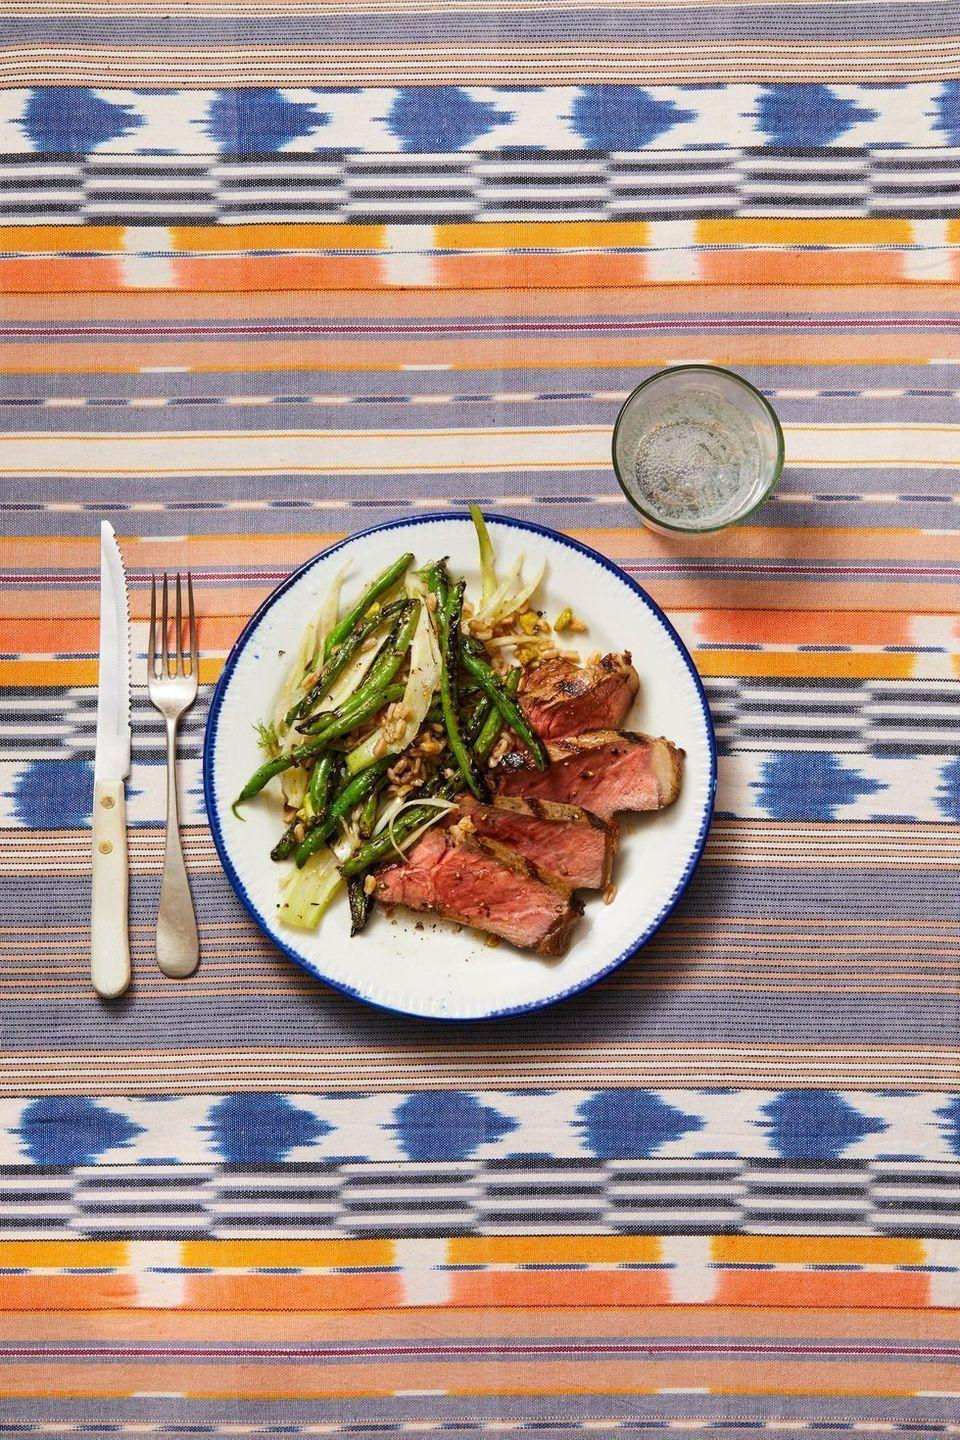 """<p>Lucky enough to have access to a grill all year long? Perfectly charred steak is ready in just 12 minutes, just enough time for you to <a href=""""https://www.goodhousekeeping.com/food-recipes/cooking/a27557917/what-is-farro/"""" rel=""""nofollow noopener"""" target=""""_blank"""" data-ylk=""""slk:boil farro"""" class=""""link rapid-noclick-resp"""">boil farro</a> for the whole fam.</p><p><em><a href=""""https://www.goodhousekeeping.com/food-recipes/a28611907/steak-with-grilled-green-beans-fennel-and-farro-recipe/"""" rel=""""nofollow noopener"""" target=""""_blank"""" data-ylk=""""slk:Get the recipe for Steak With Grilled Green Beans, Fennel & Farro »"""" class=""""link rapid-noclick-resp"""">Get the recipe for Steak With Grilled Green Beans, Fennel & Farro »</a></em></p>"""